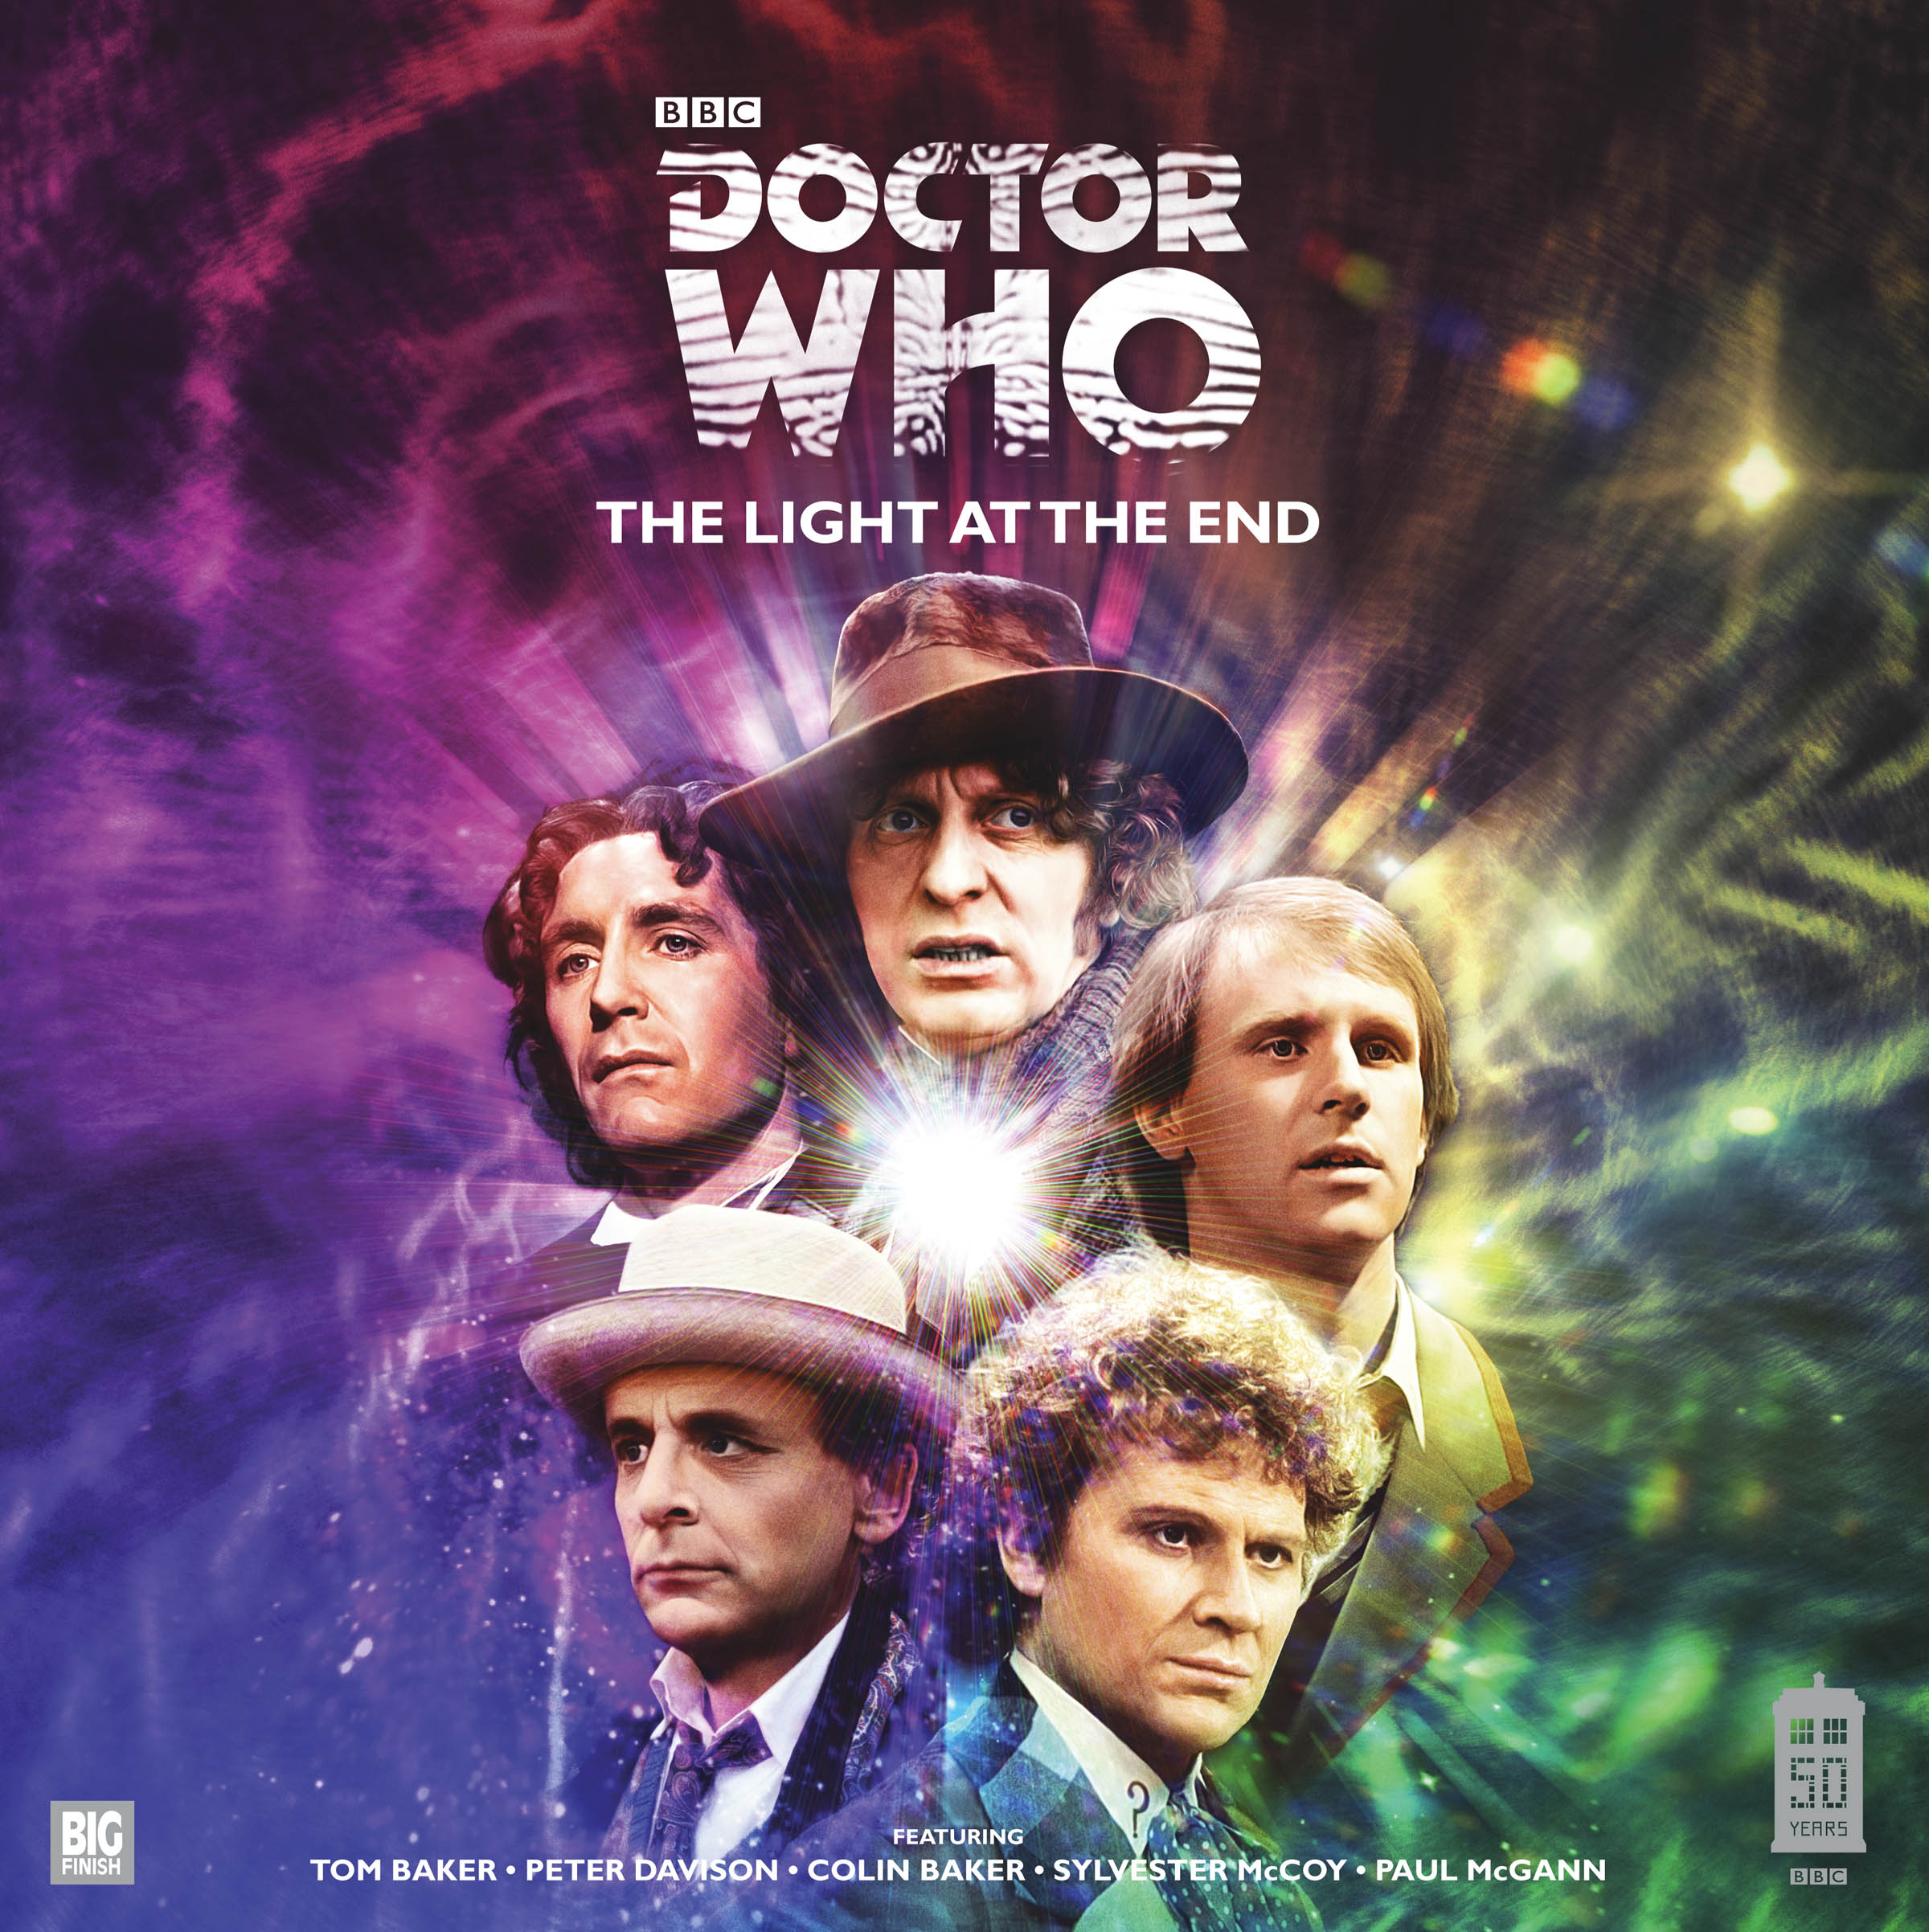 Doctor Who At 50 The Light At The End On Vinyl